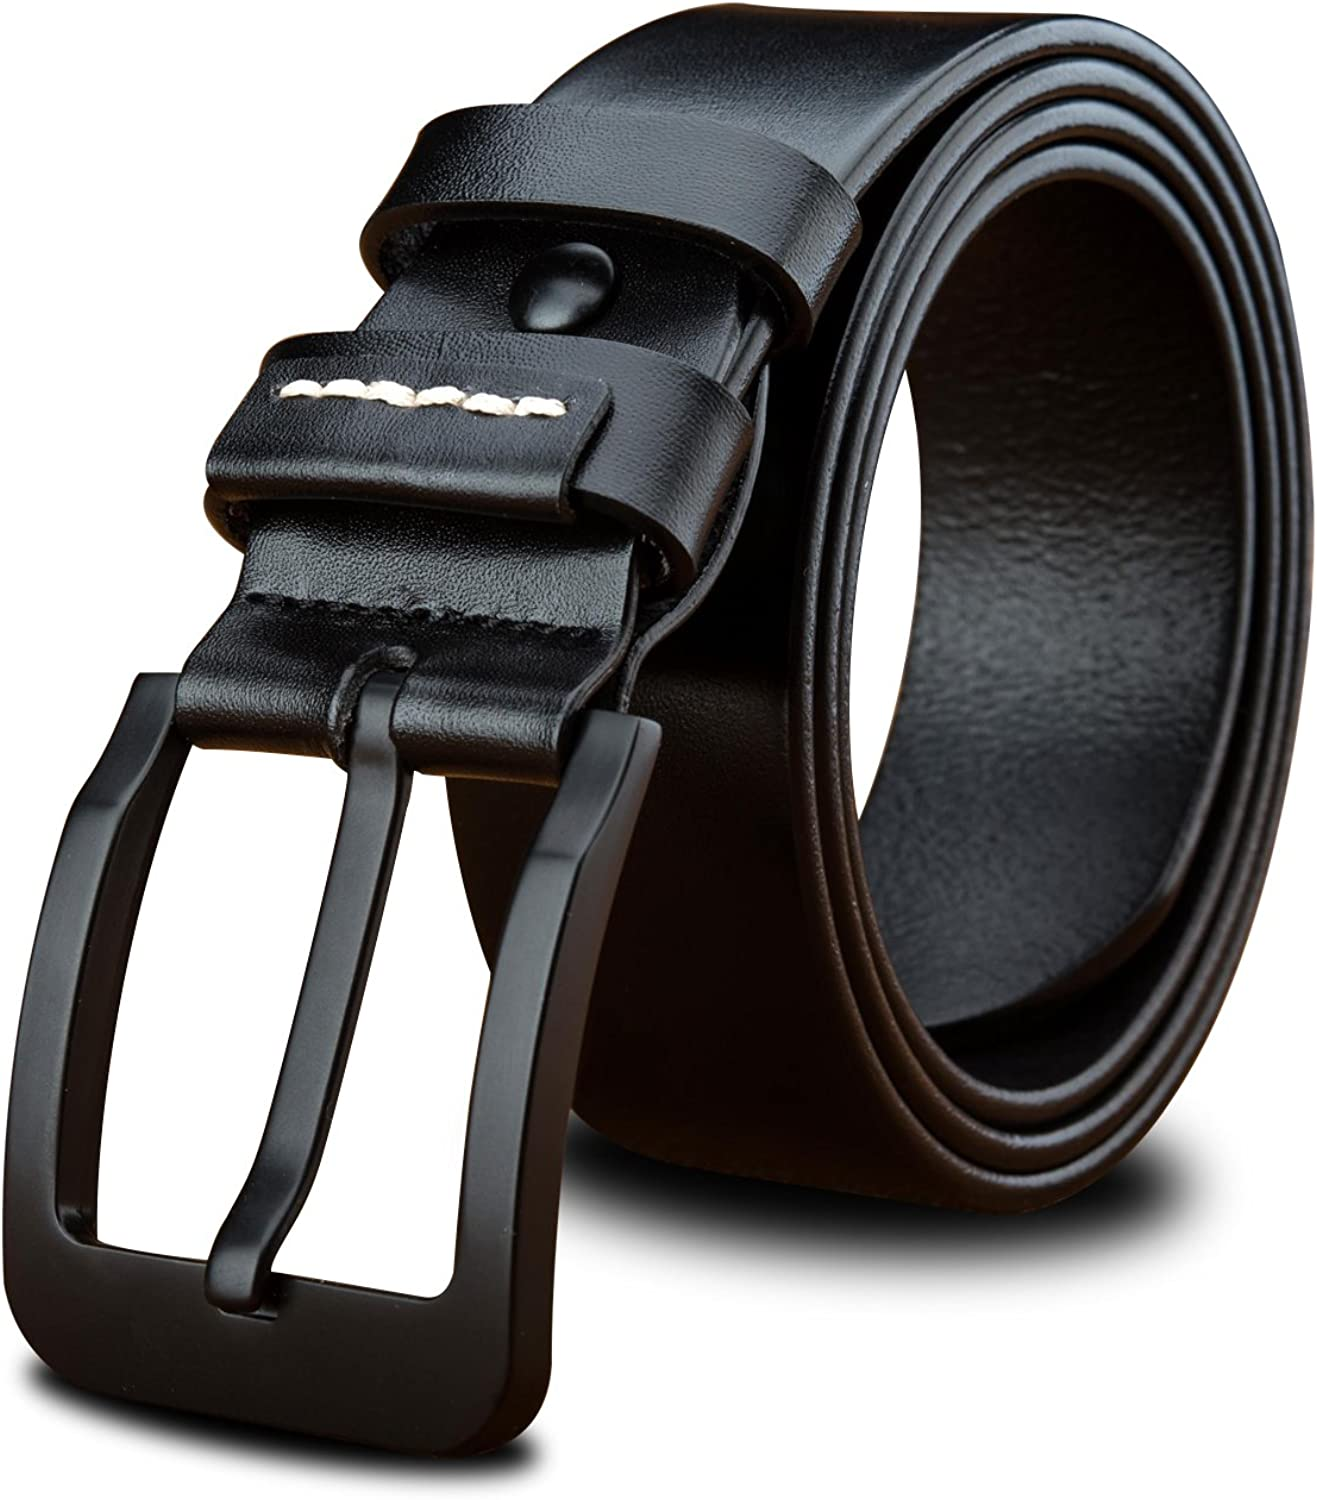 LUCIANO Casual Italy Cowhide Genuine Leather Black & Brown Belt Men's Dress Belts